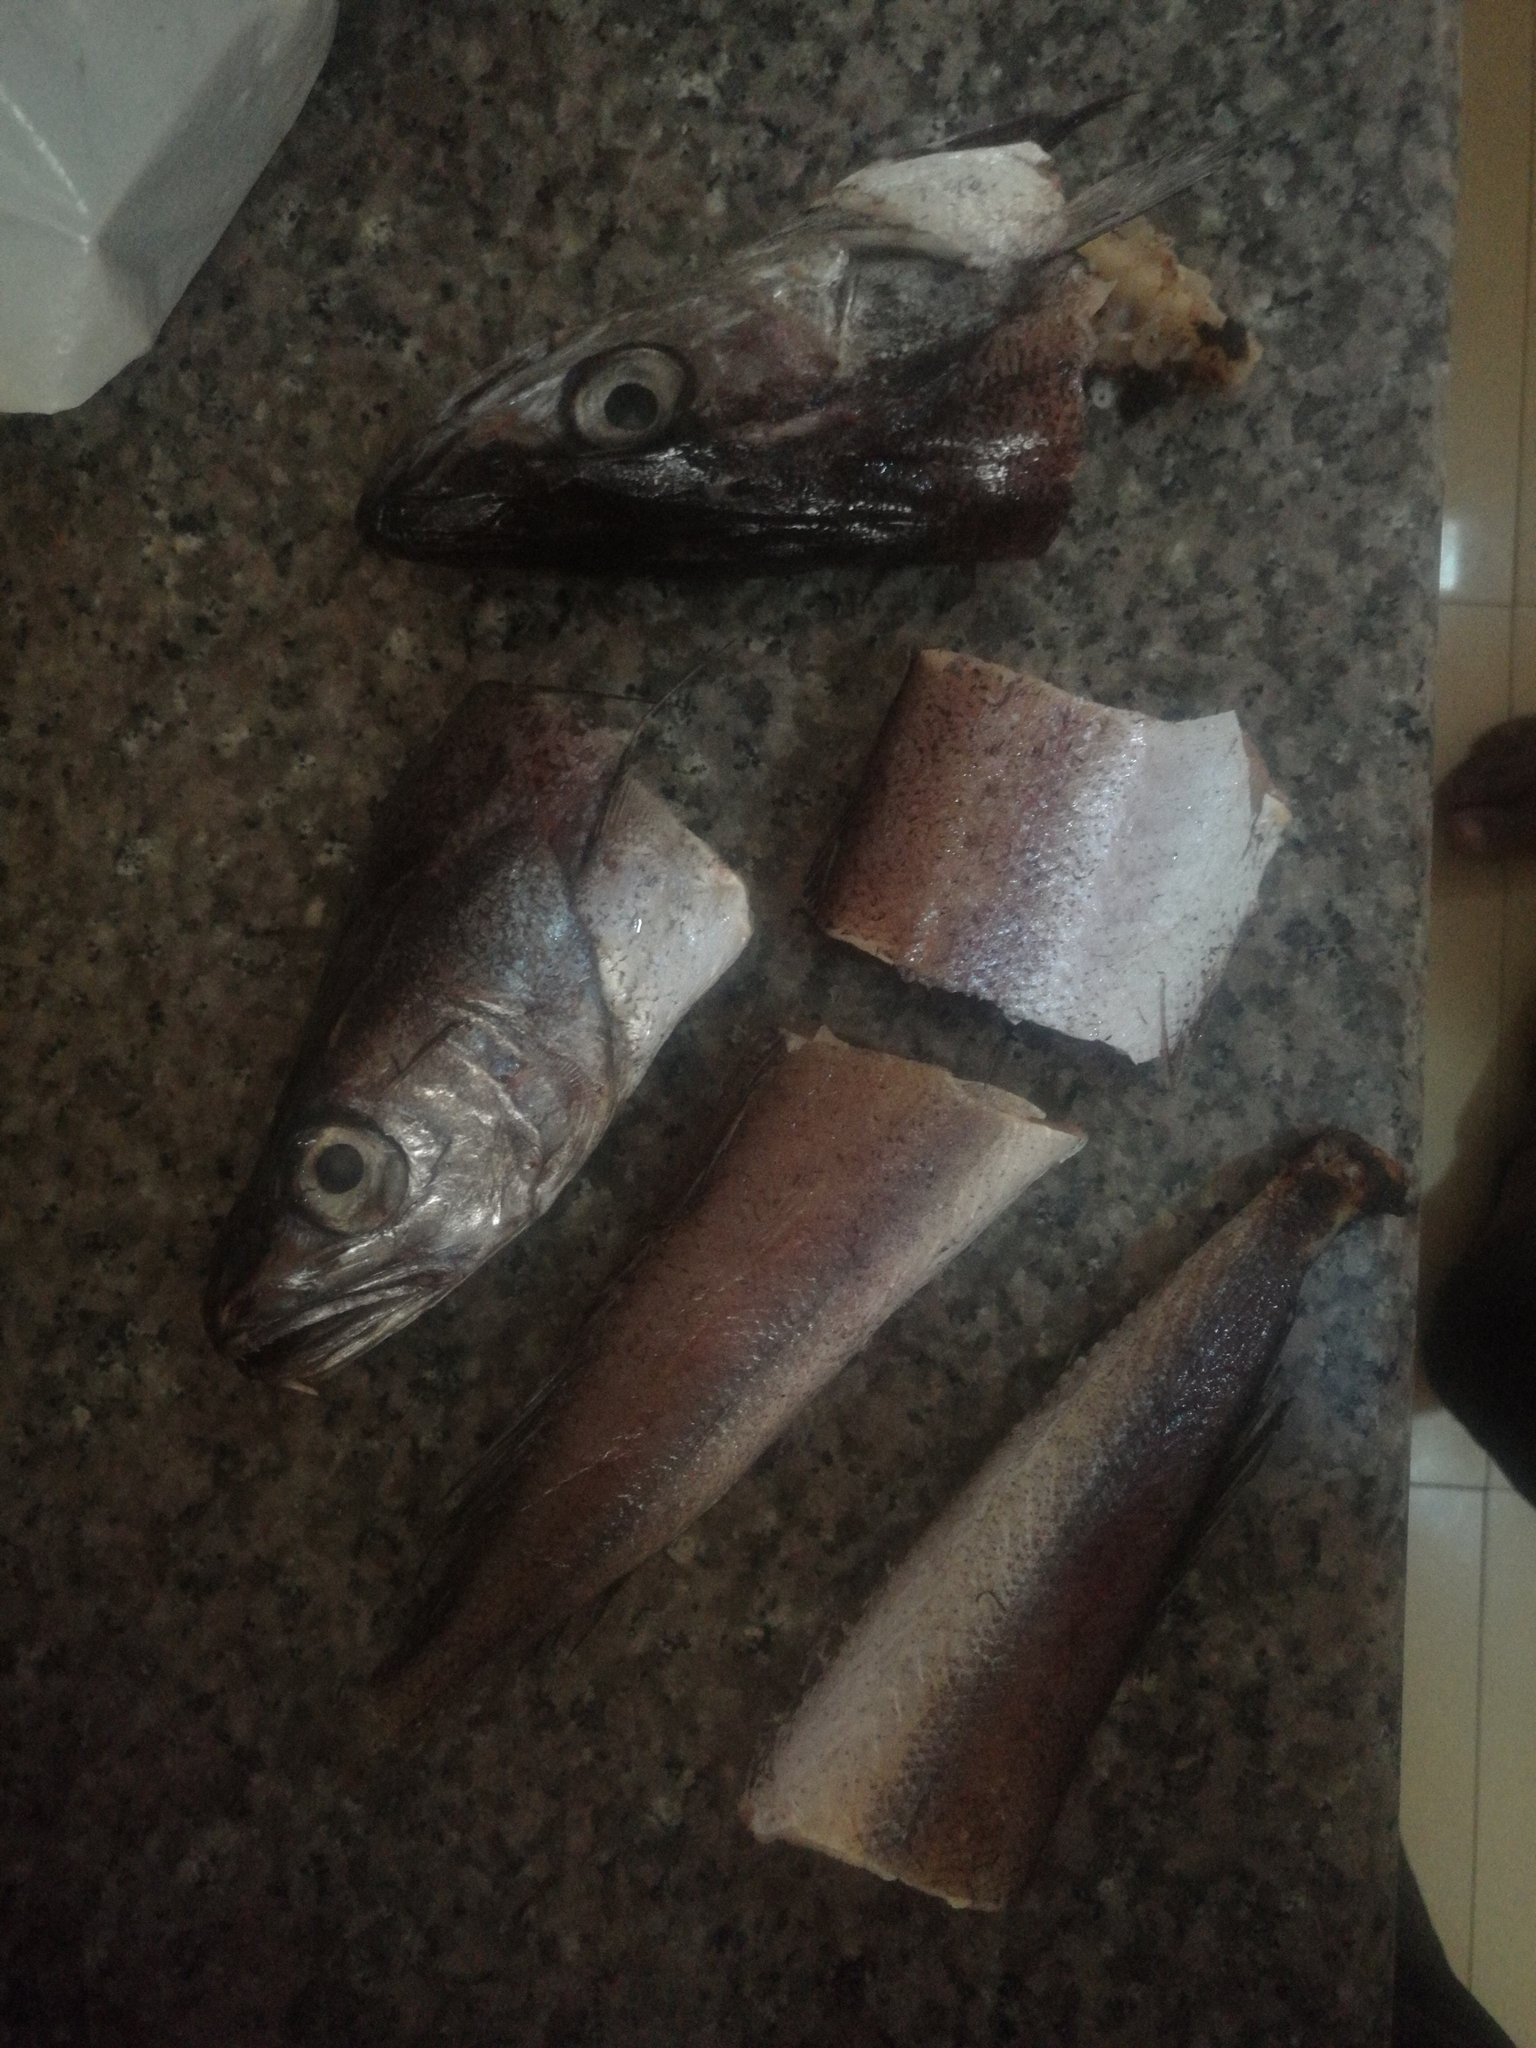 My goodness! They now sell fake frozen fish? (photos)